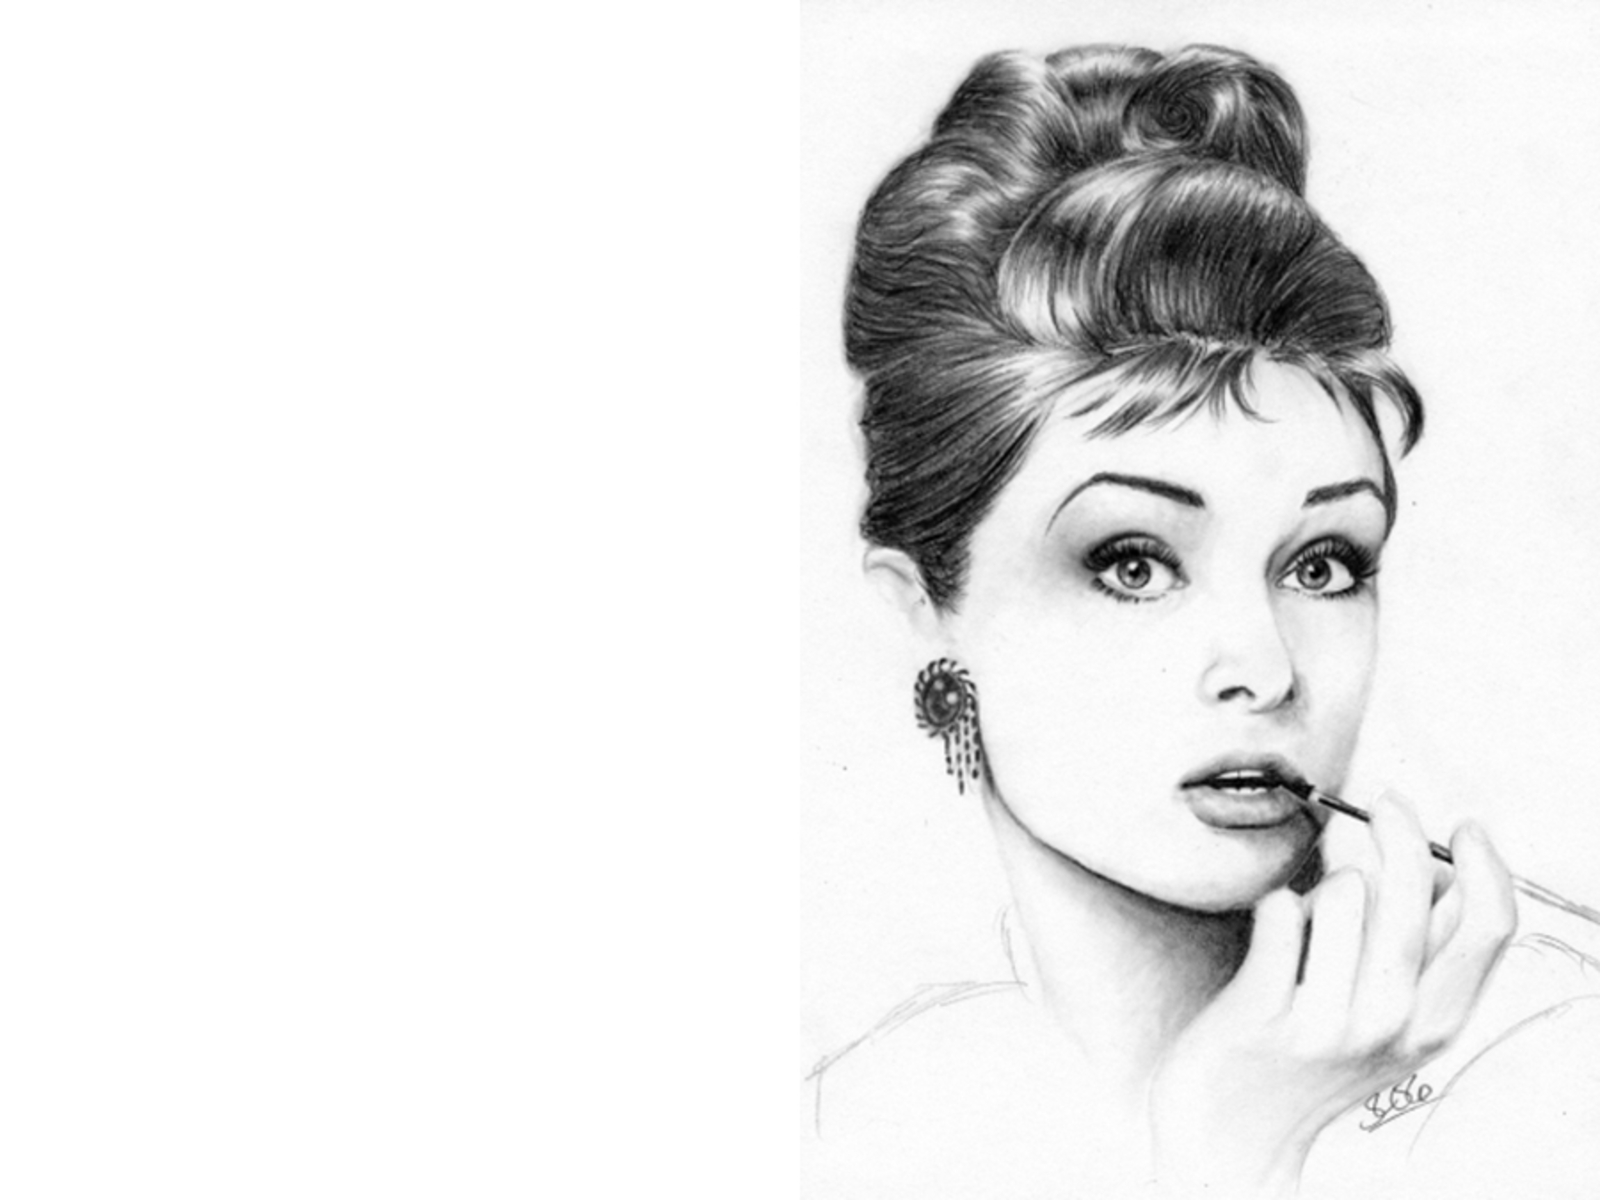 Audrey Hepburn Wallpaper Audrey Hepburn Backgrounds Audrey Hepburn 1600x1200